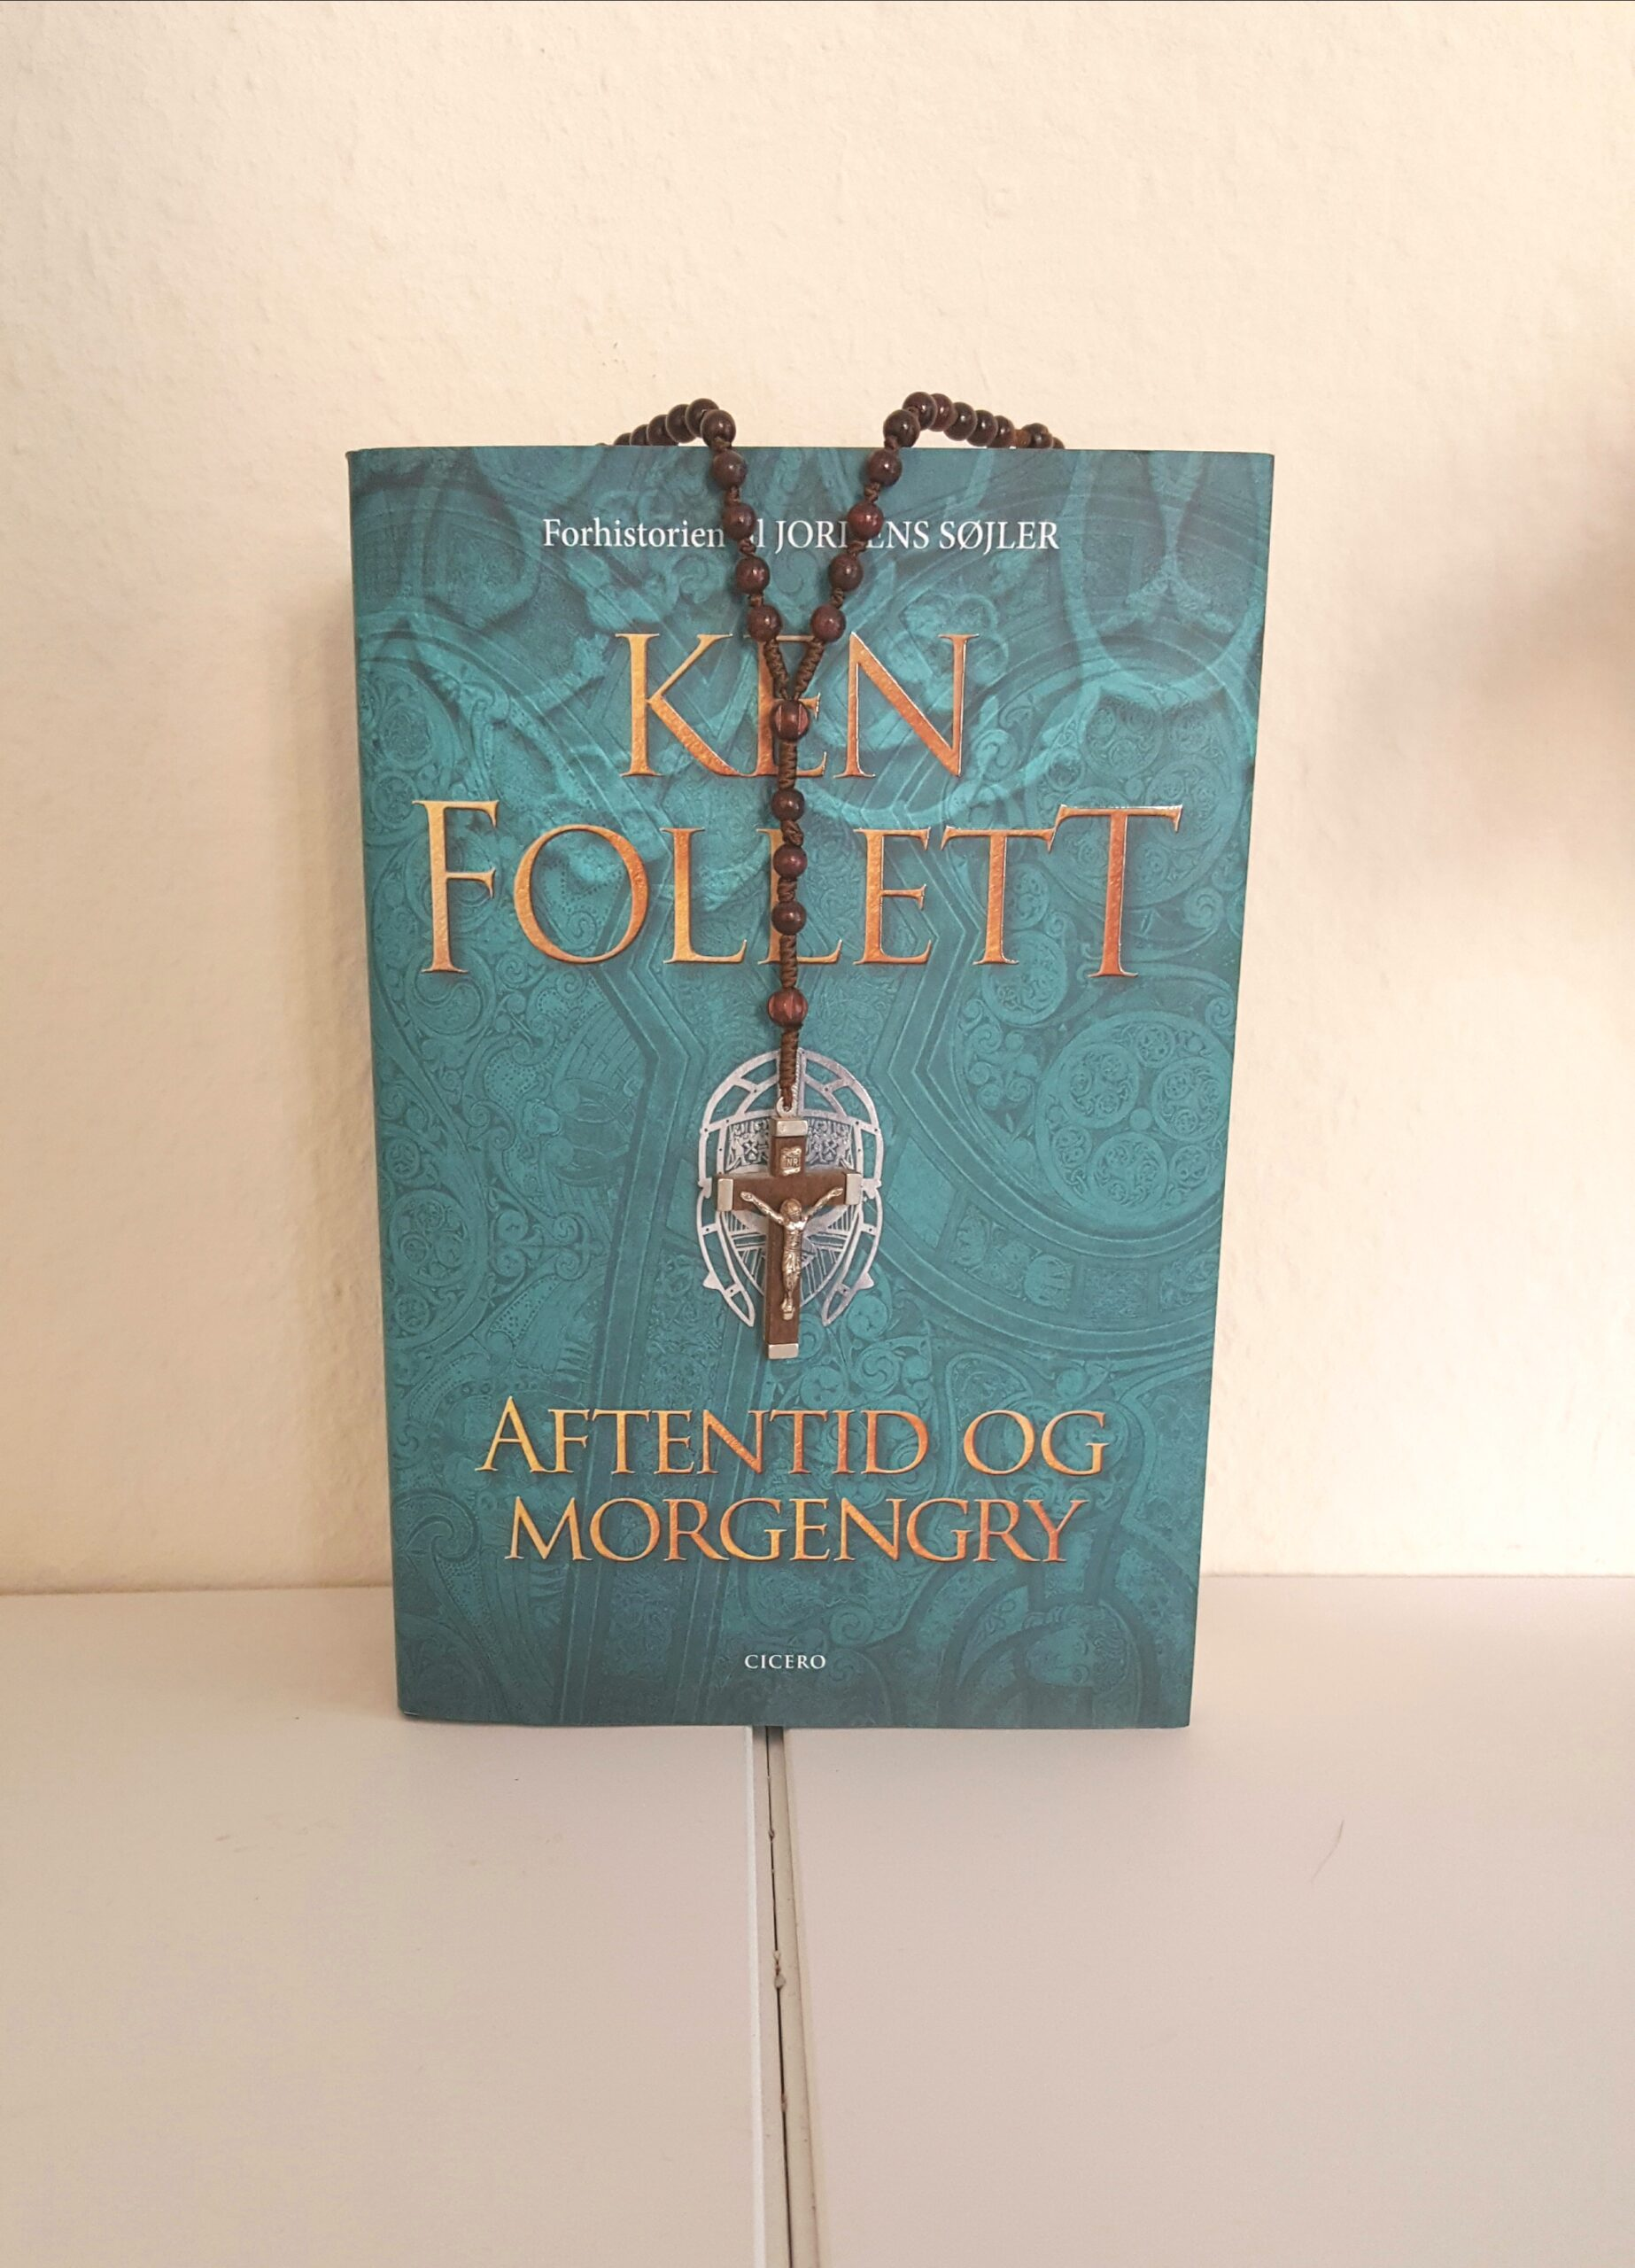 Aftentid og morgengry af Ken Follett